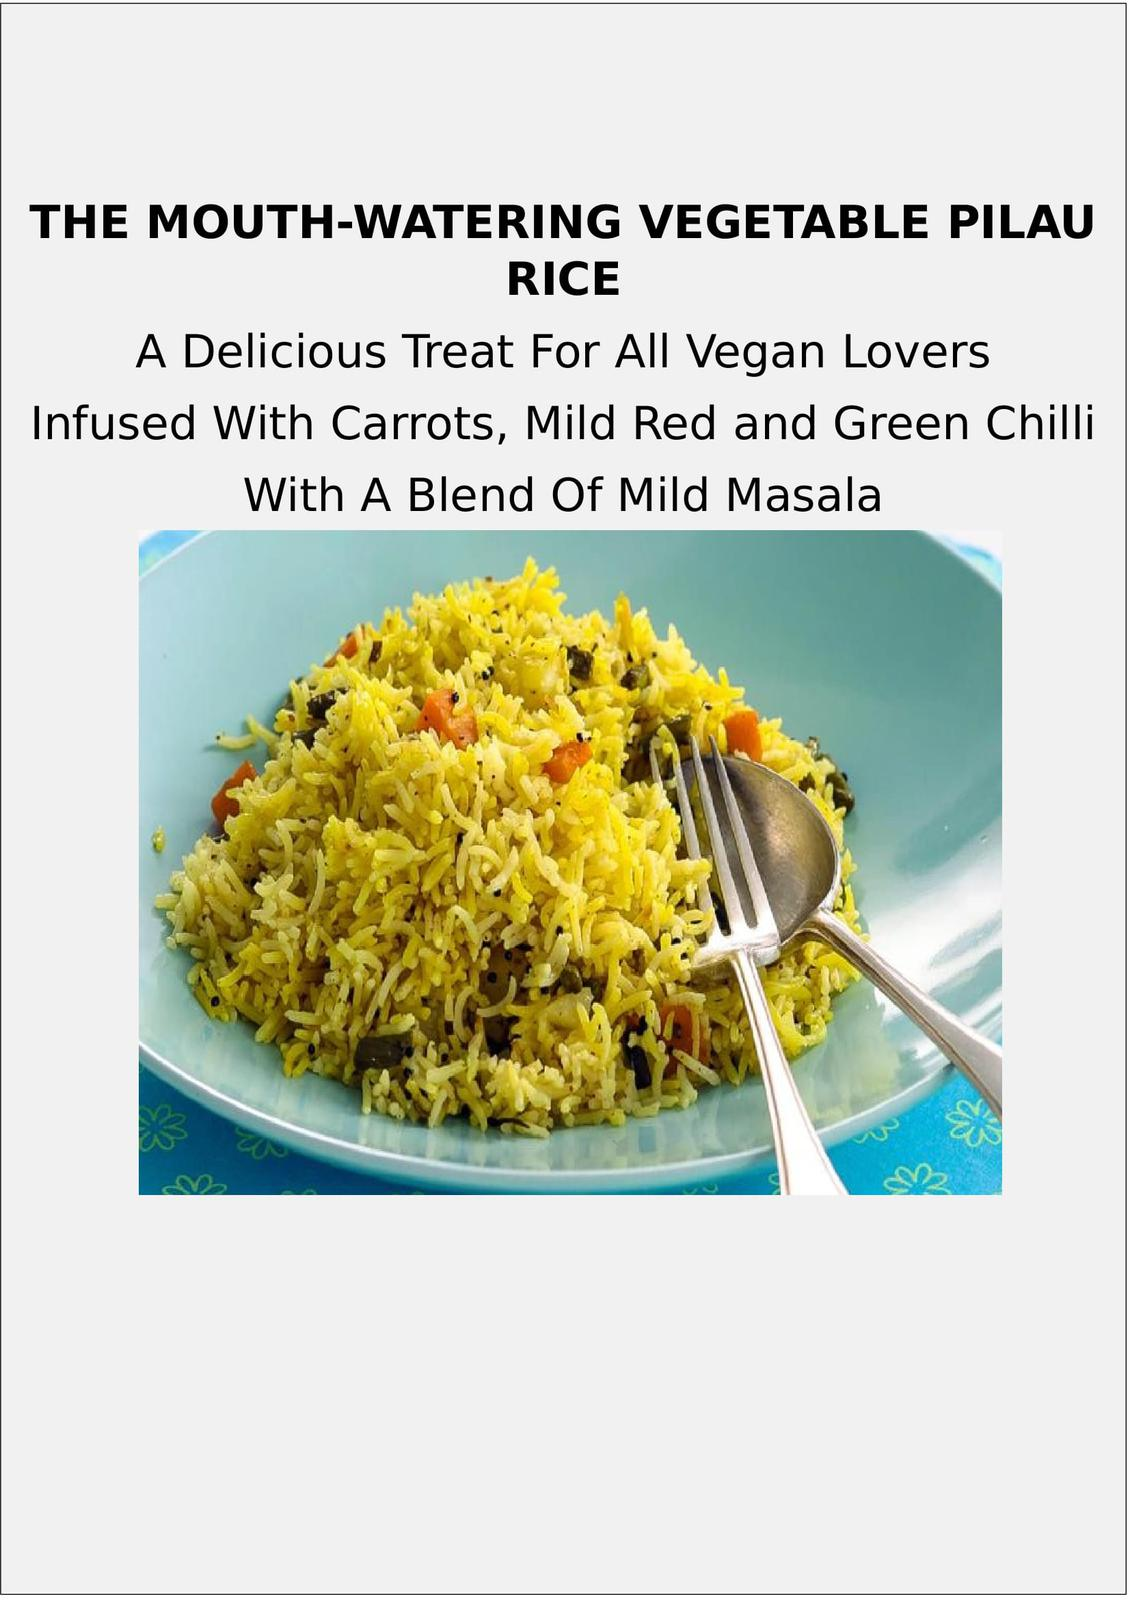 The Mouth-Watering Vegetable Pilau Rice